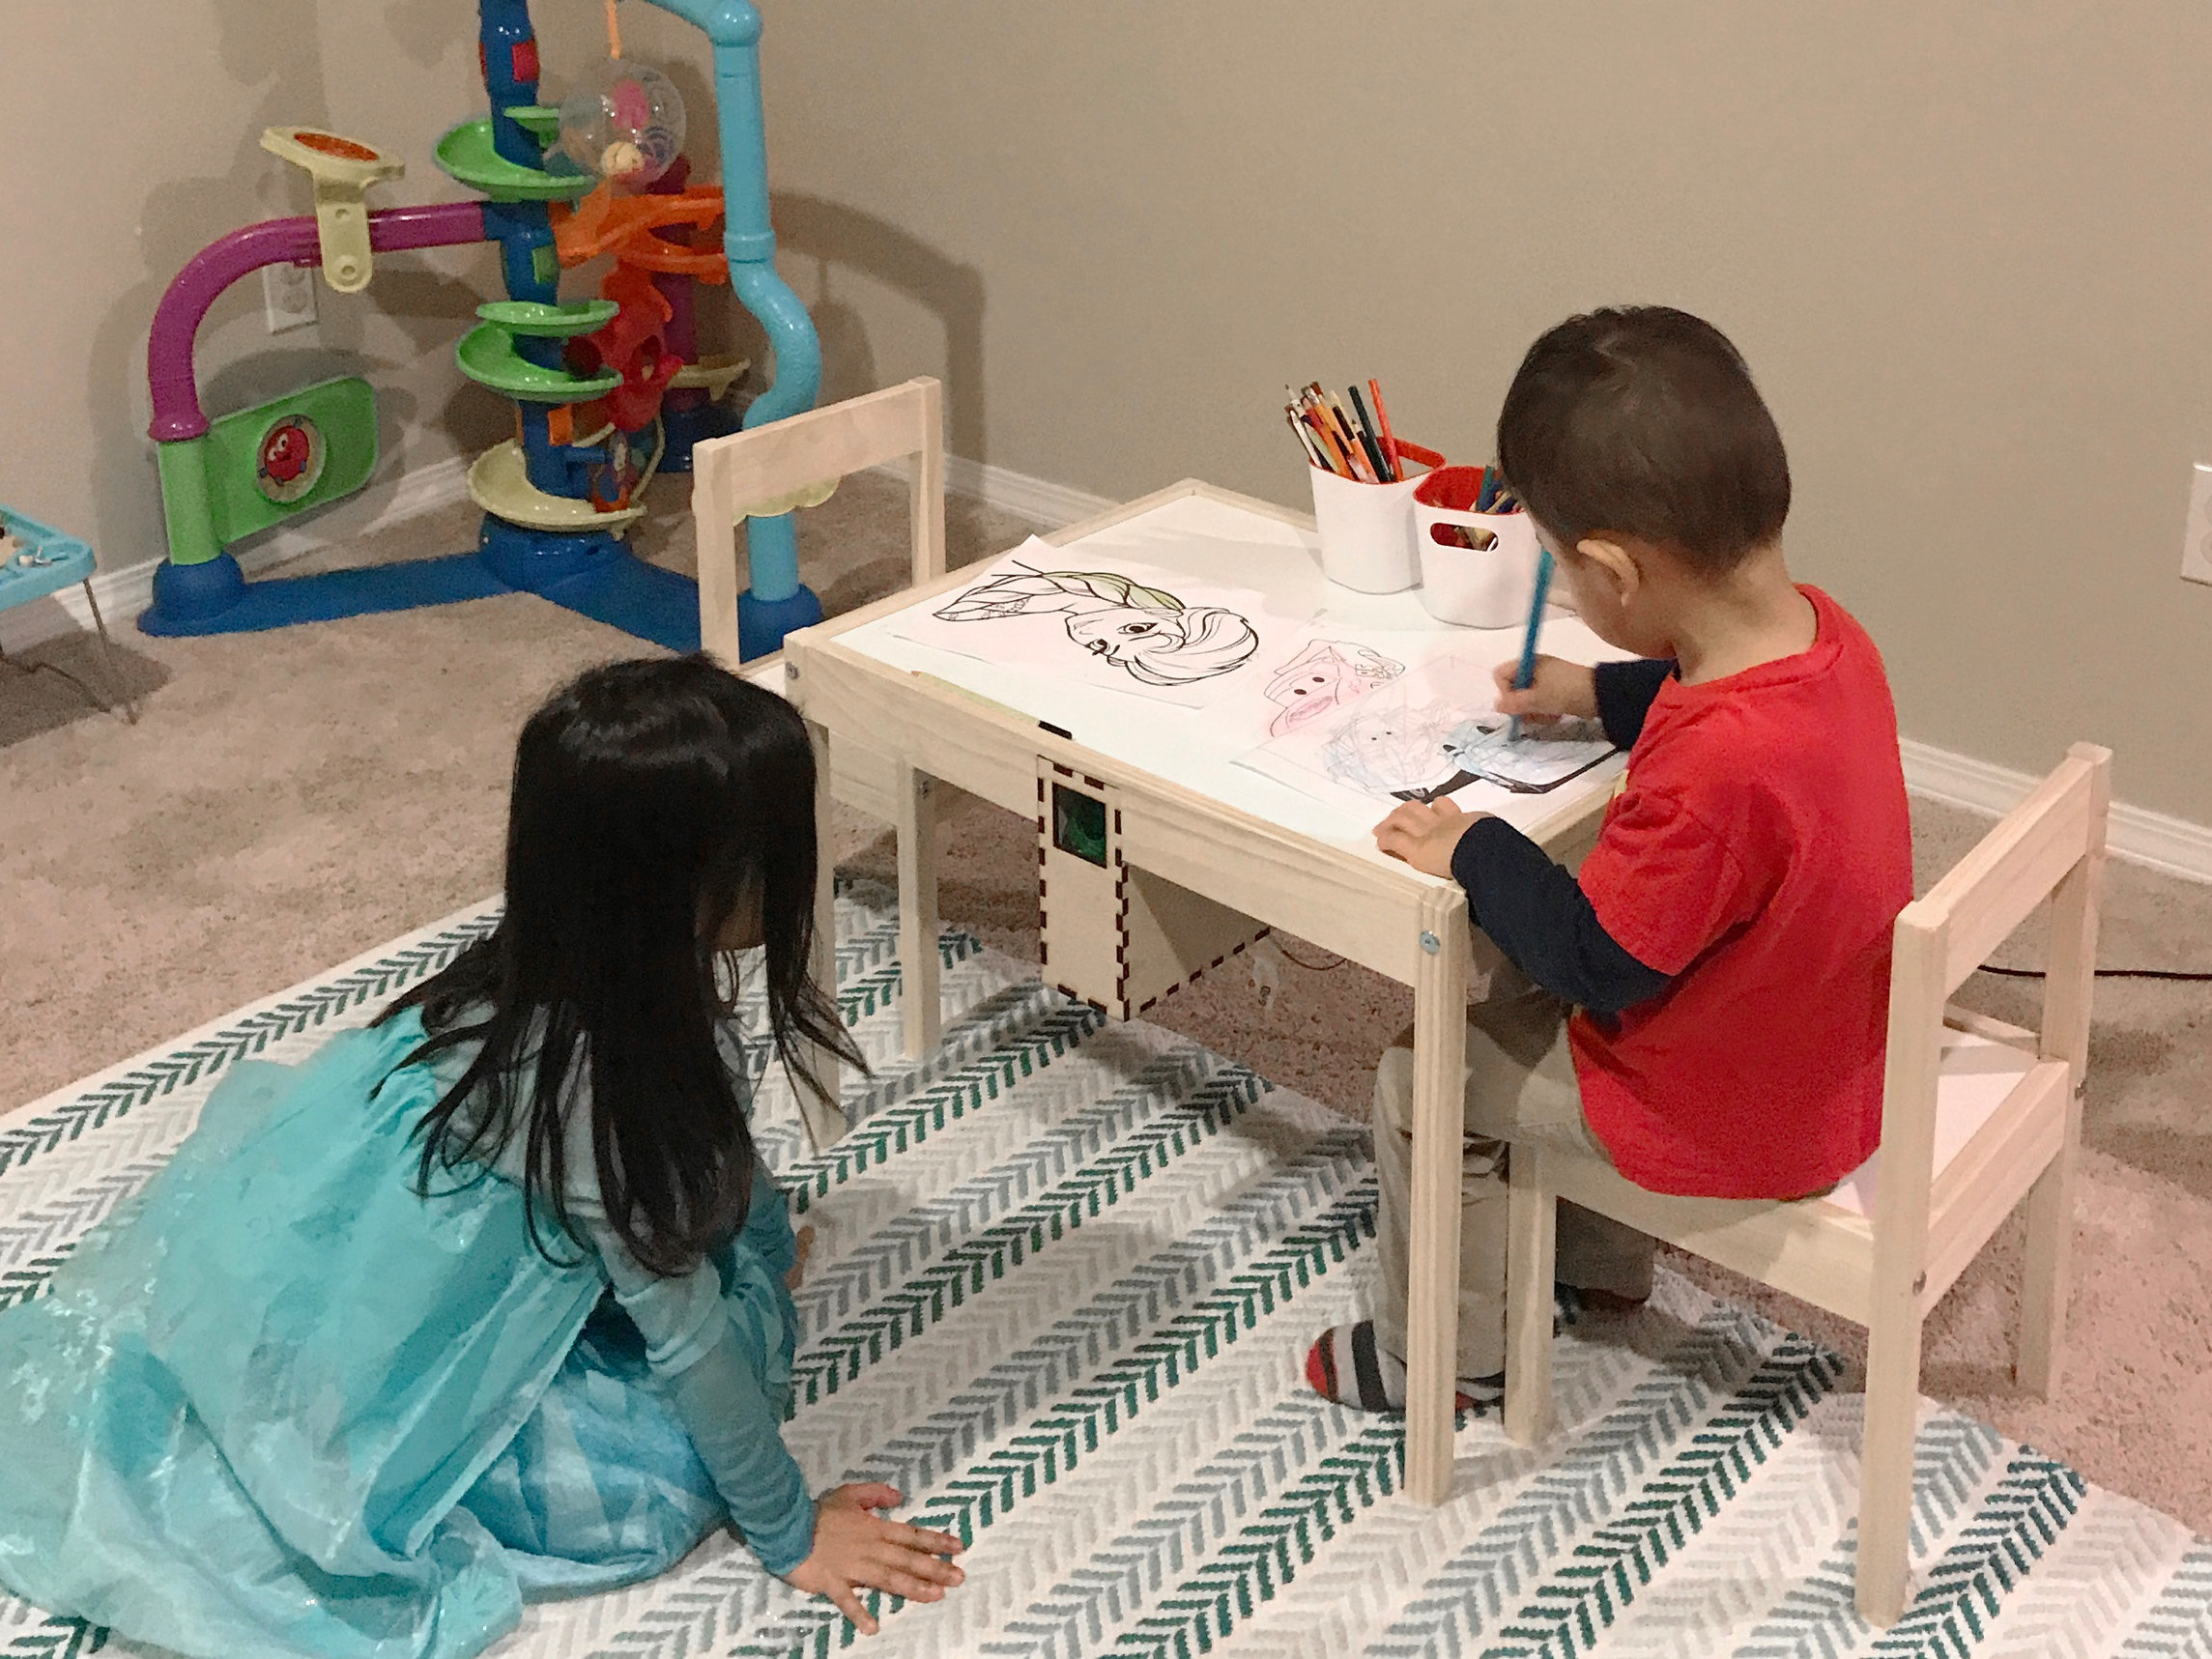 A kids' table that can actuate bubbles as someone hugs the pillow remotely.